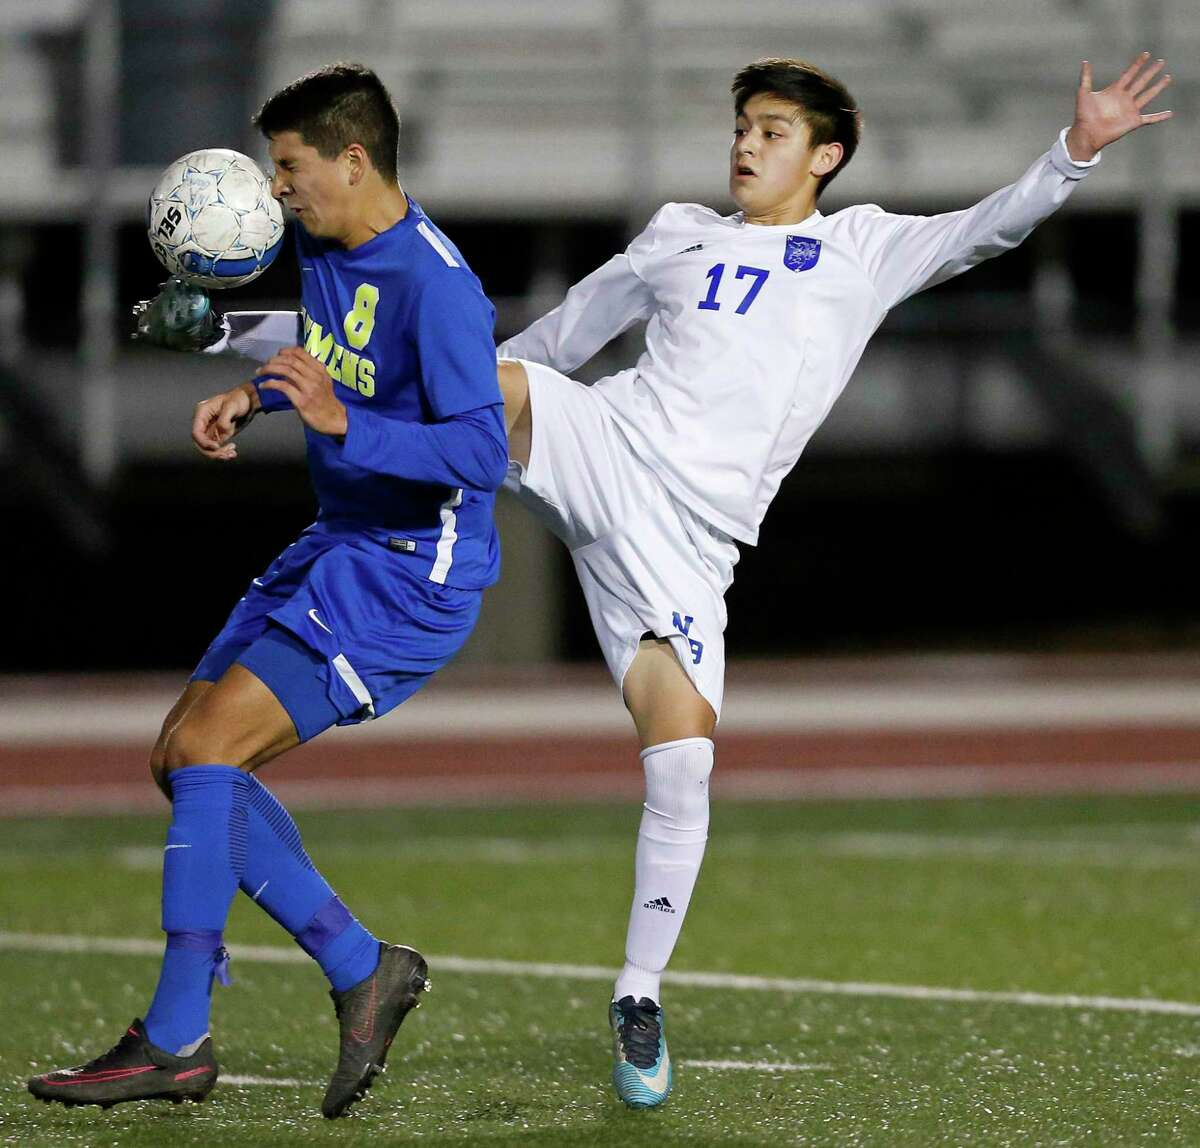 Clemens' Nicolas Mora (left) and New Braunfels' Dylan Navarijo go after the ball during first half action Friday Feb. 16, 2018 at Unicorn Stadium in New Braunfels, Texas.